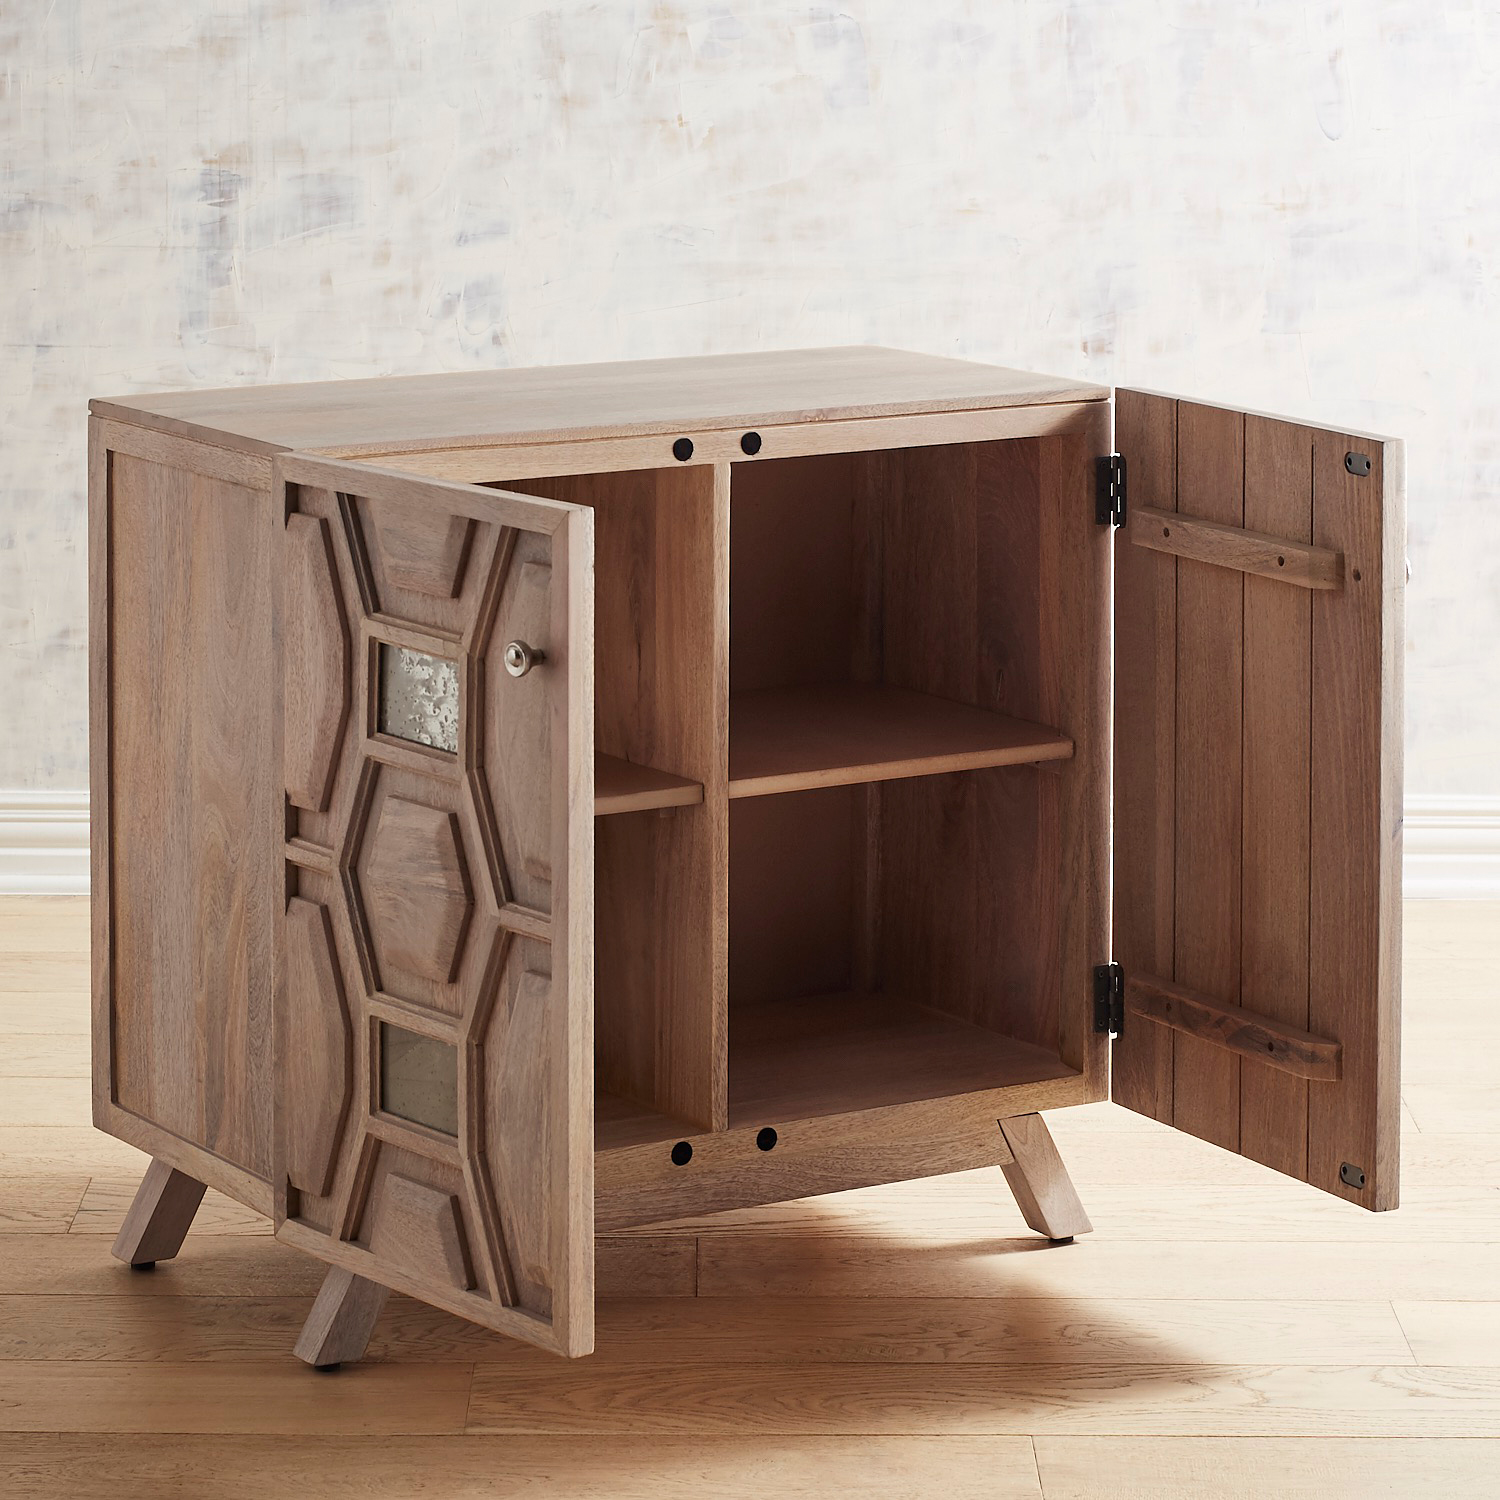 variation thumbnail of Modum Wooden Cabinet